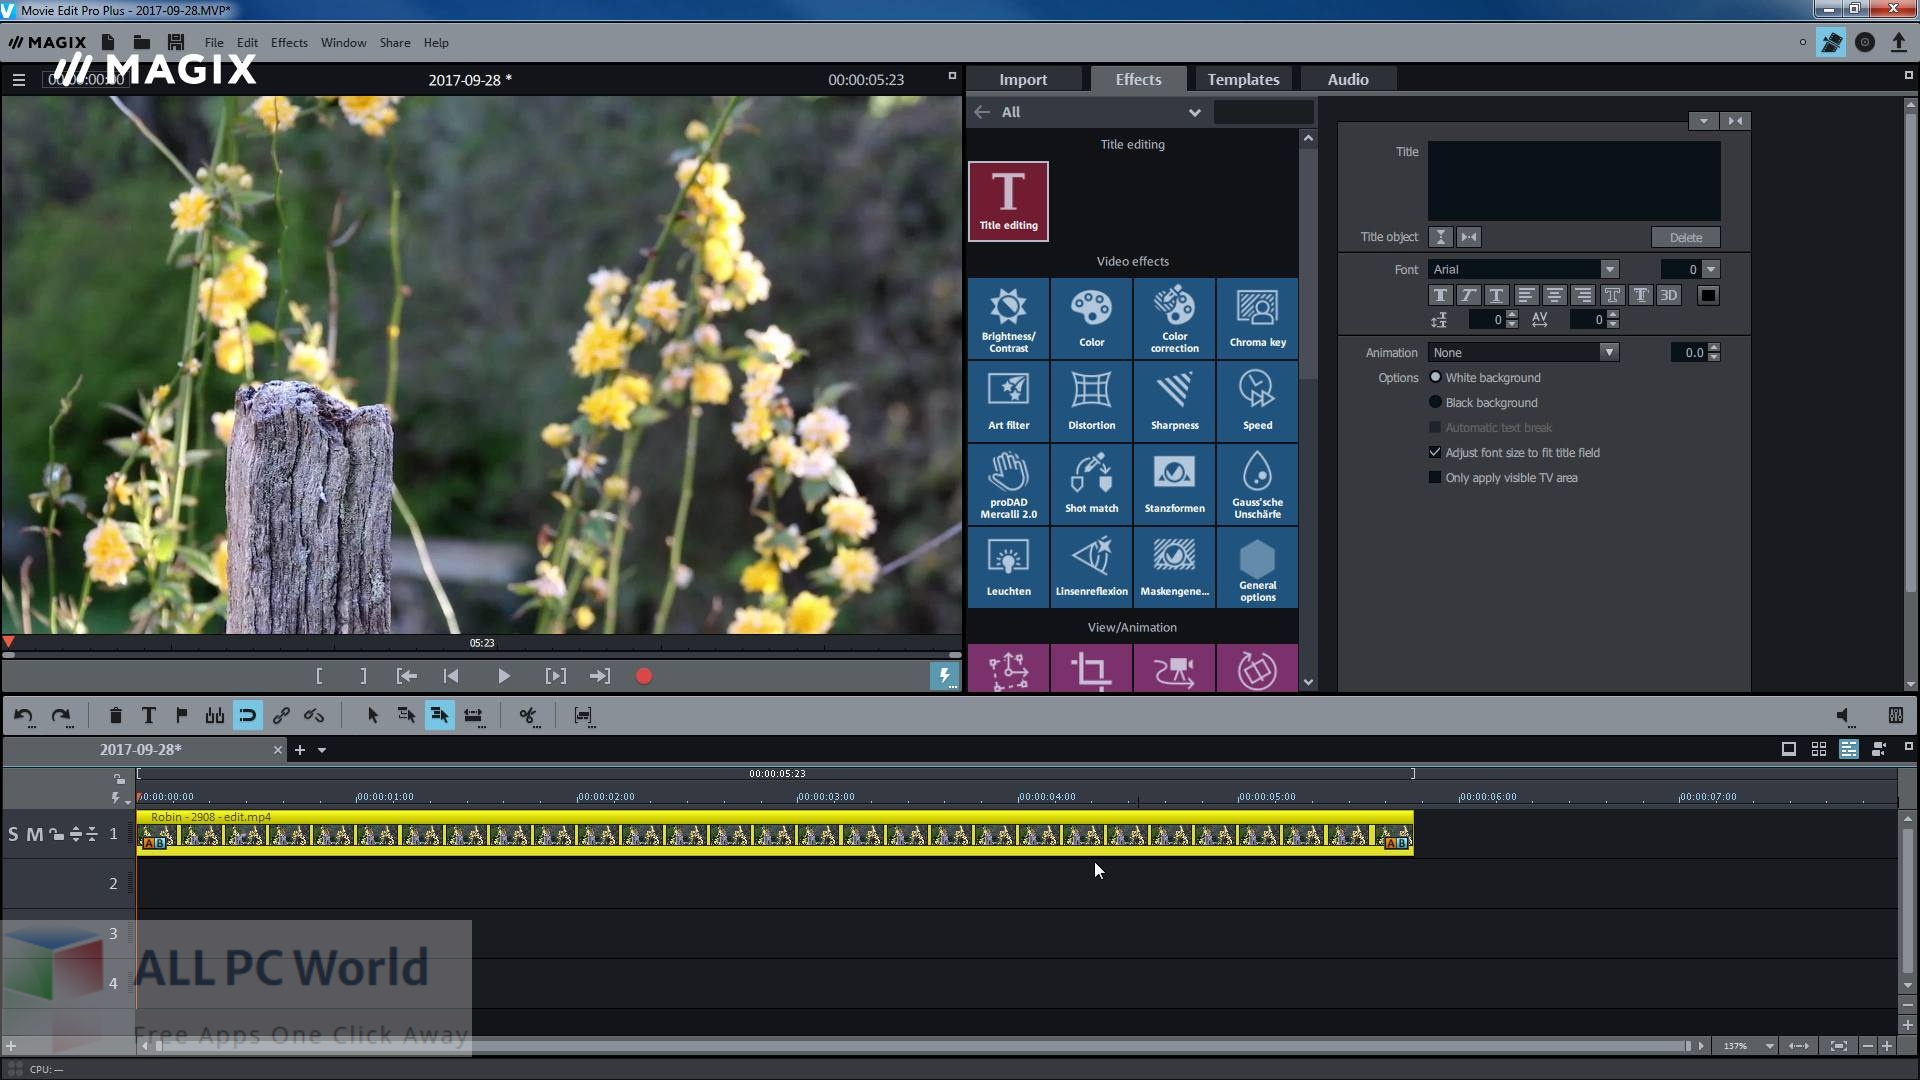 MAGIX Movie Edit Pro 2022 for Free Download